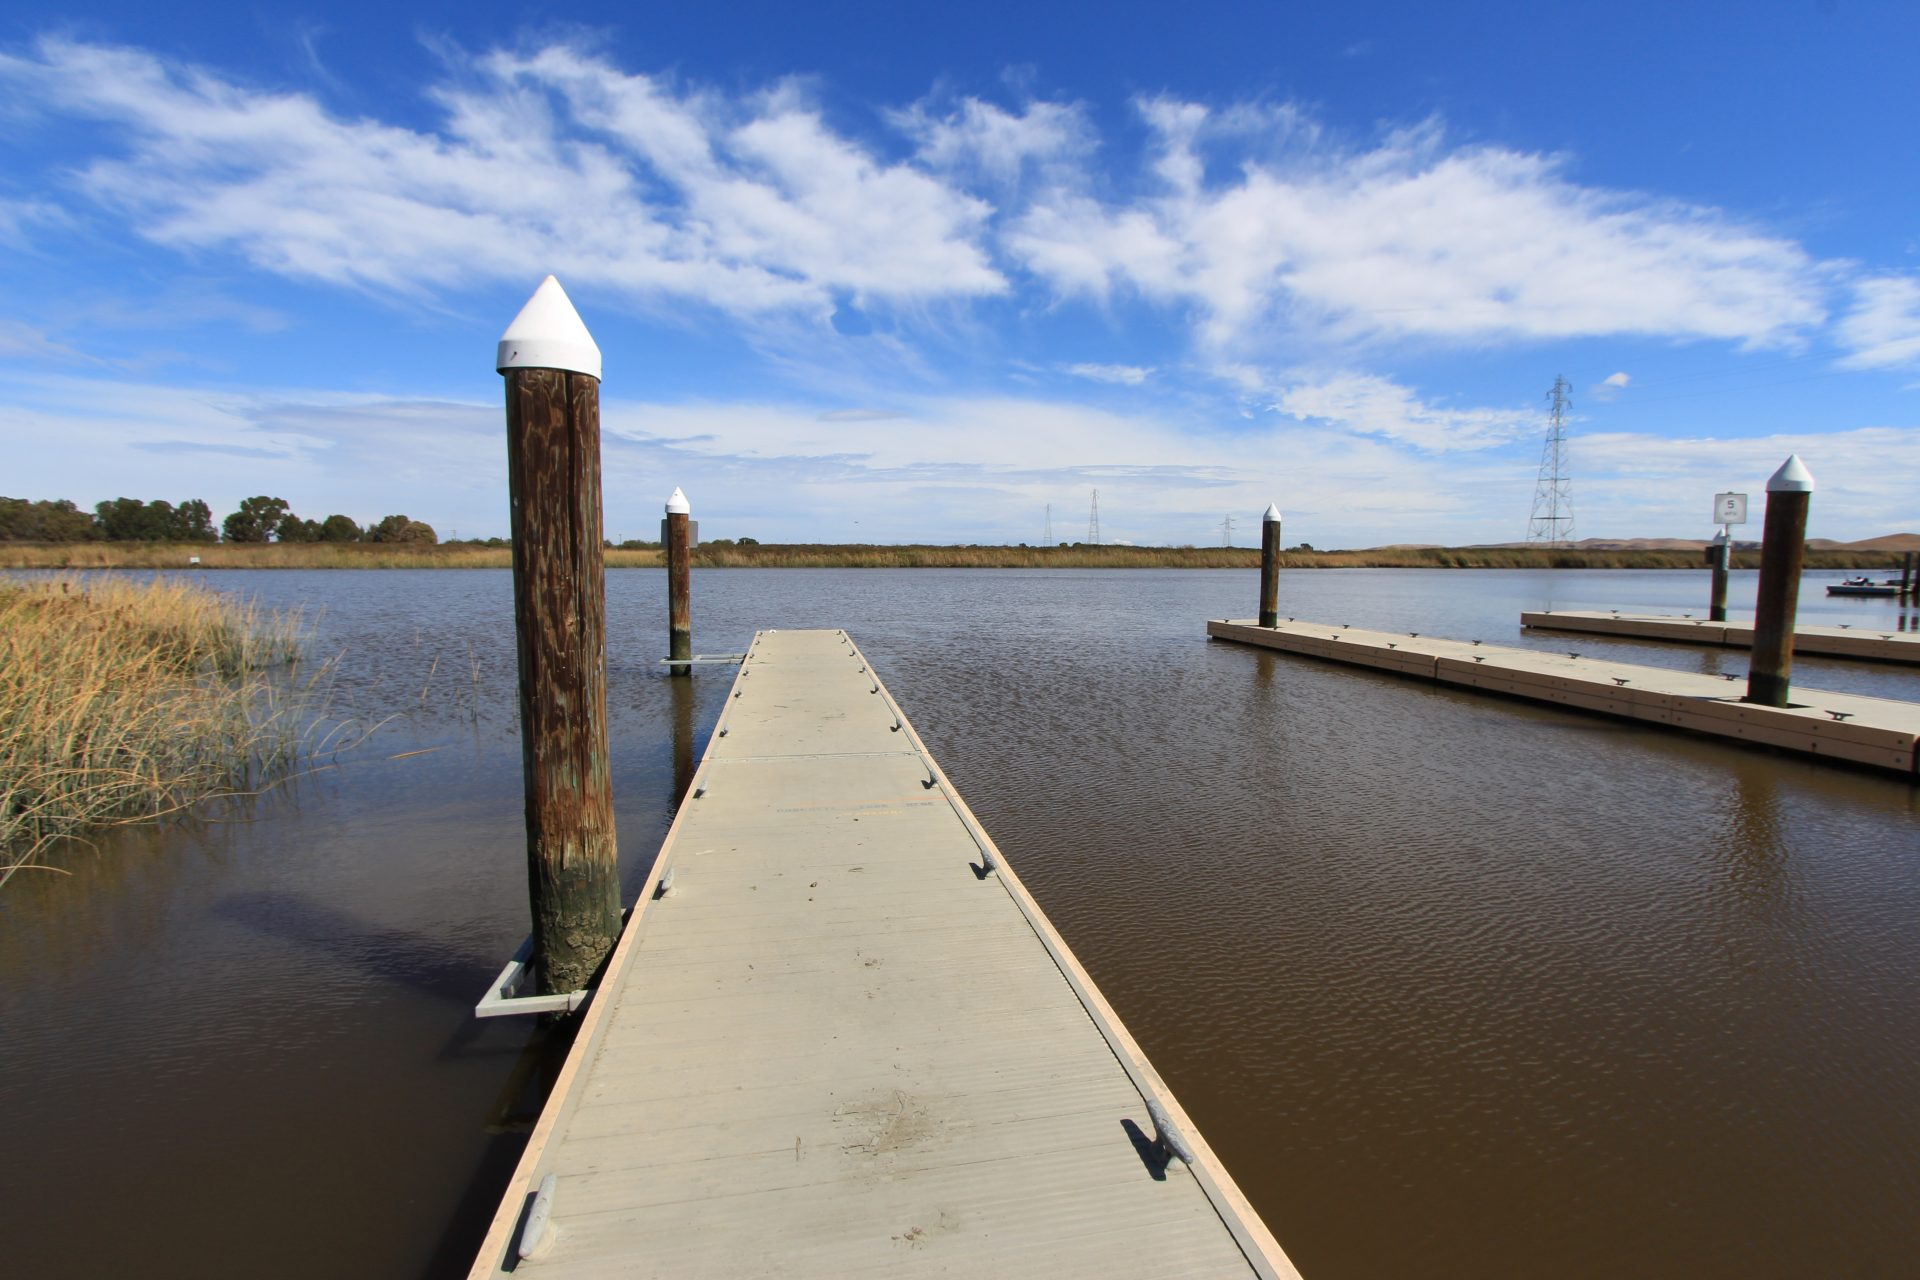 Looking out over floating dock